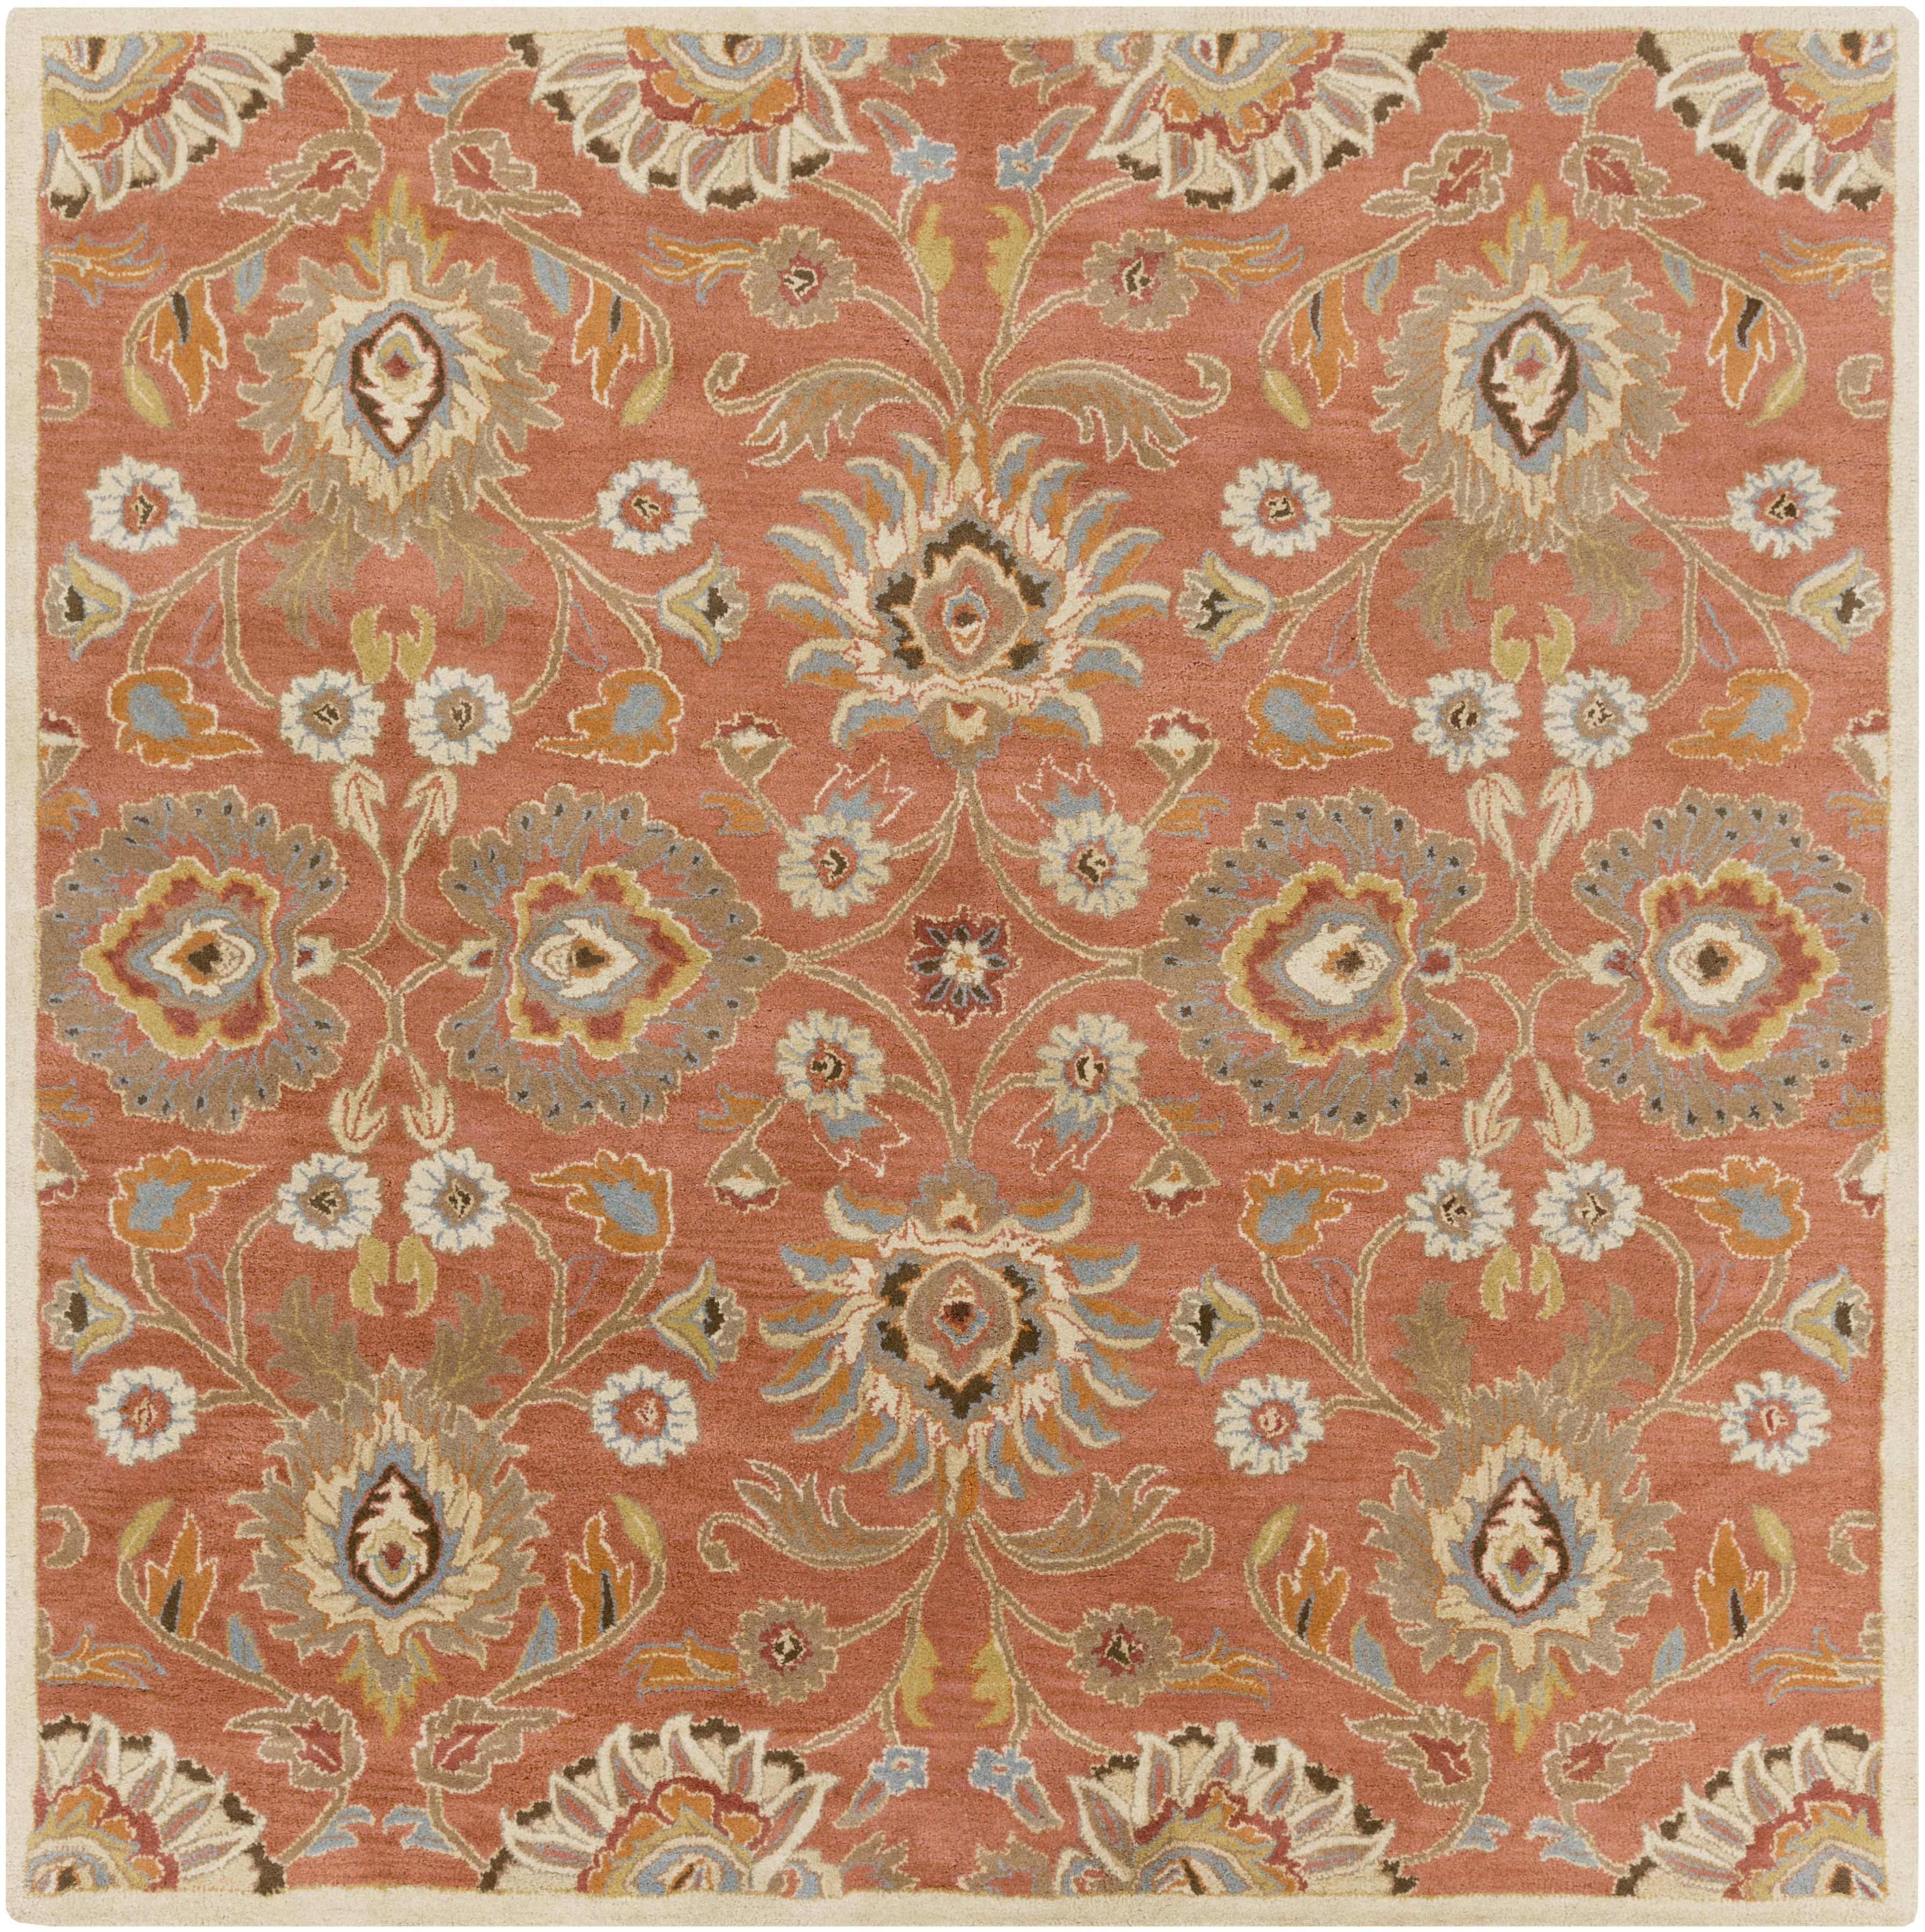 Caesar 8' Square by Surya at Rooms for Less